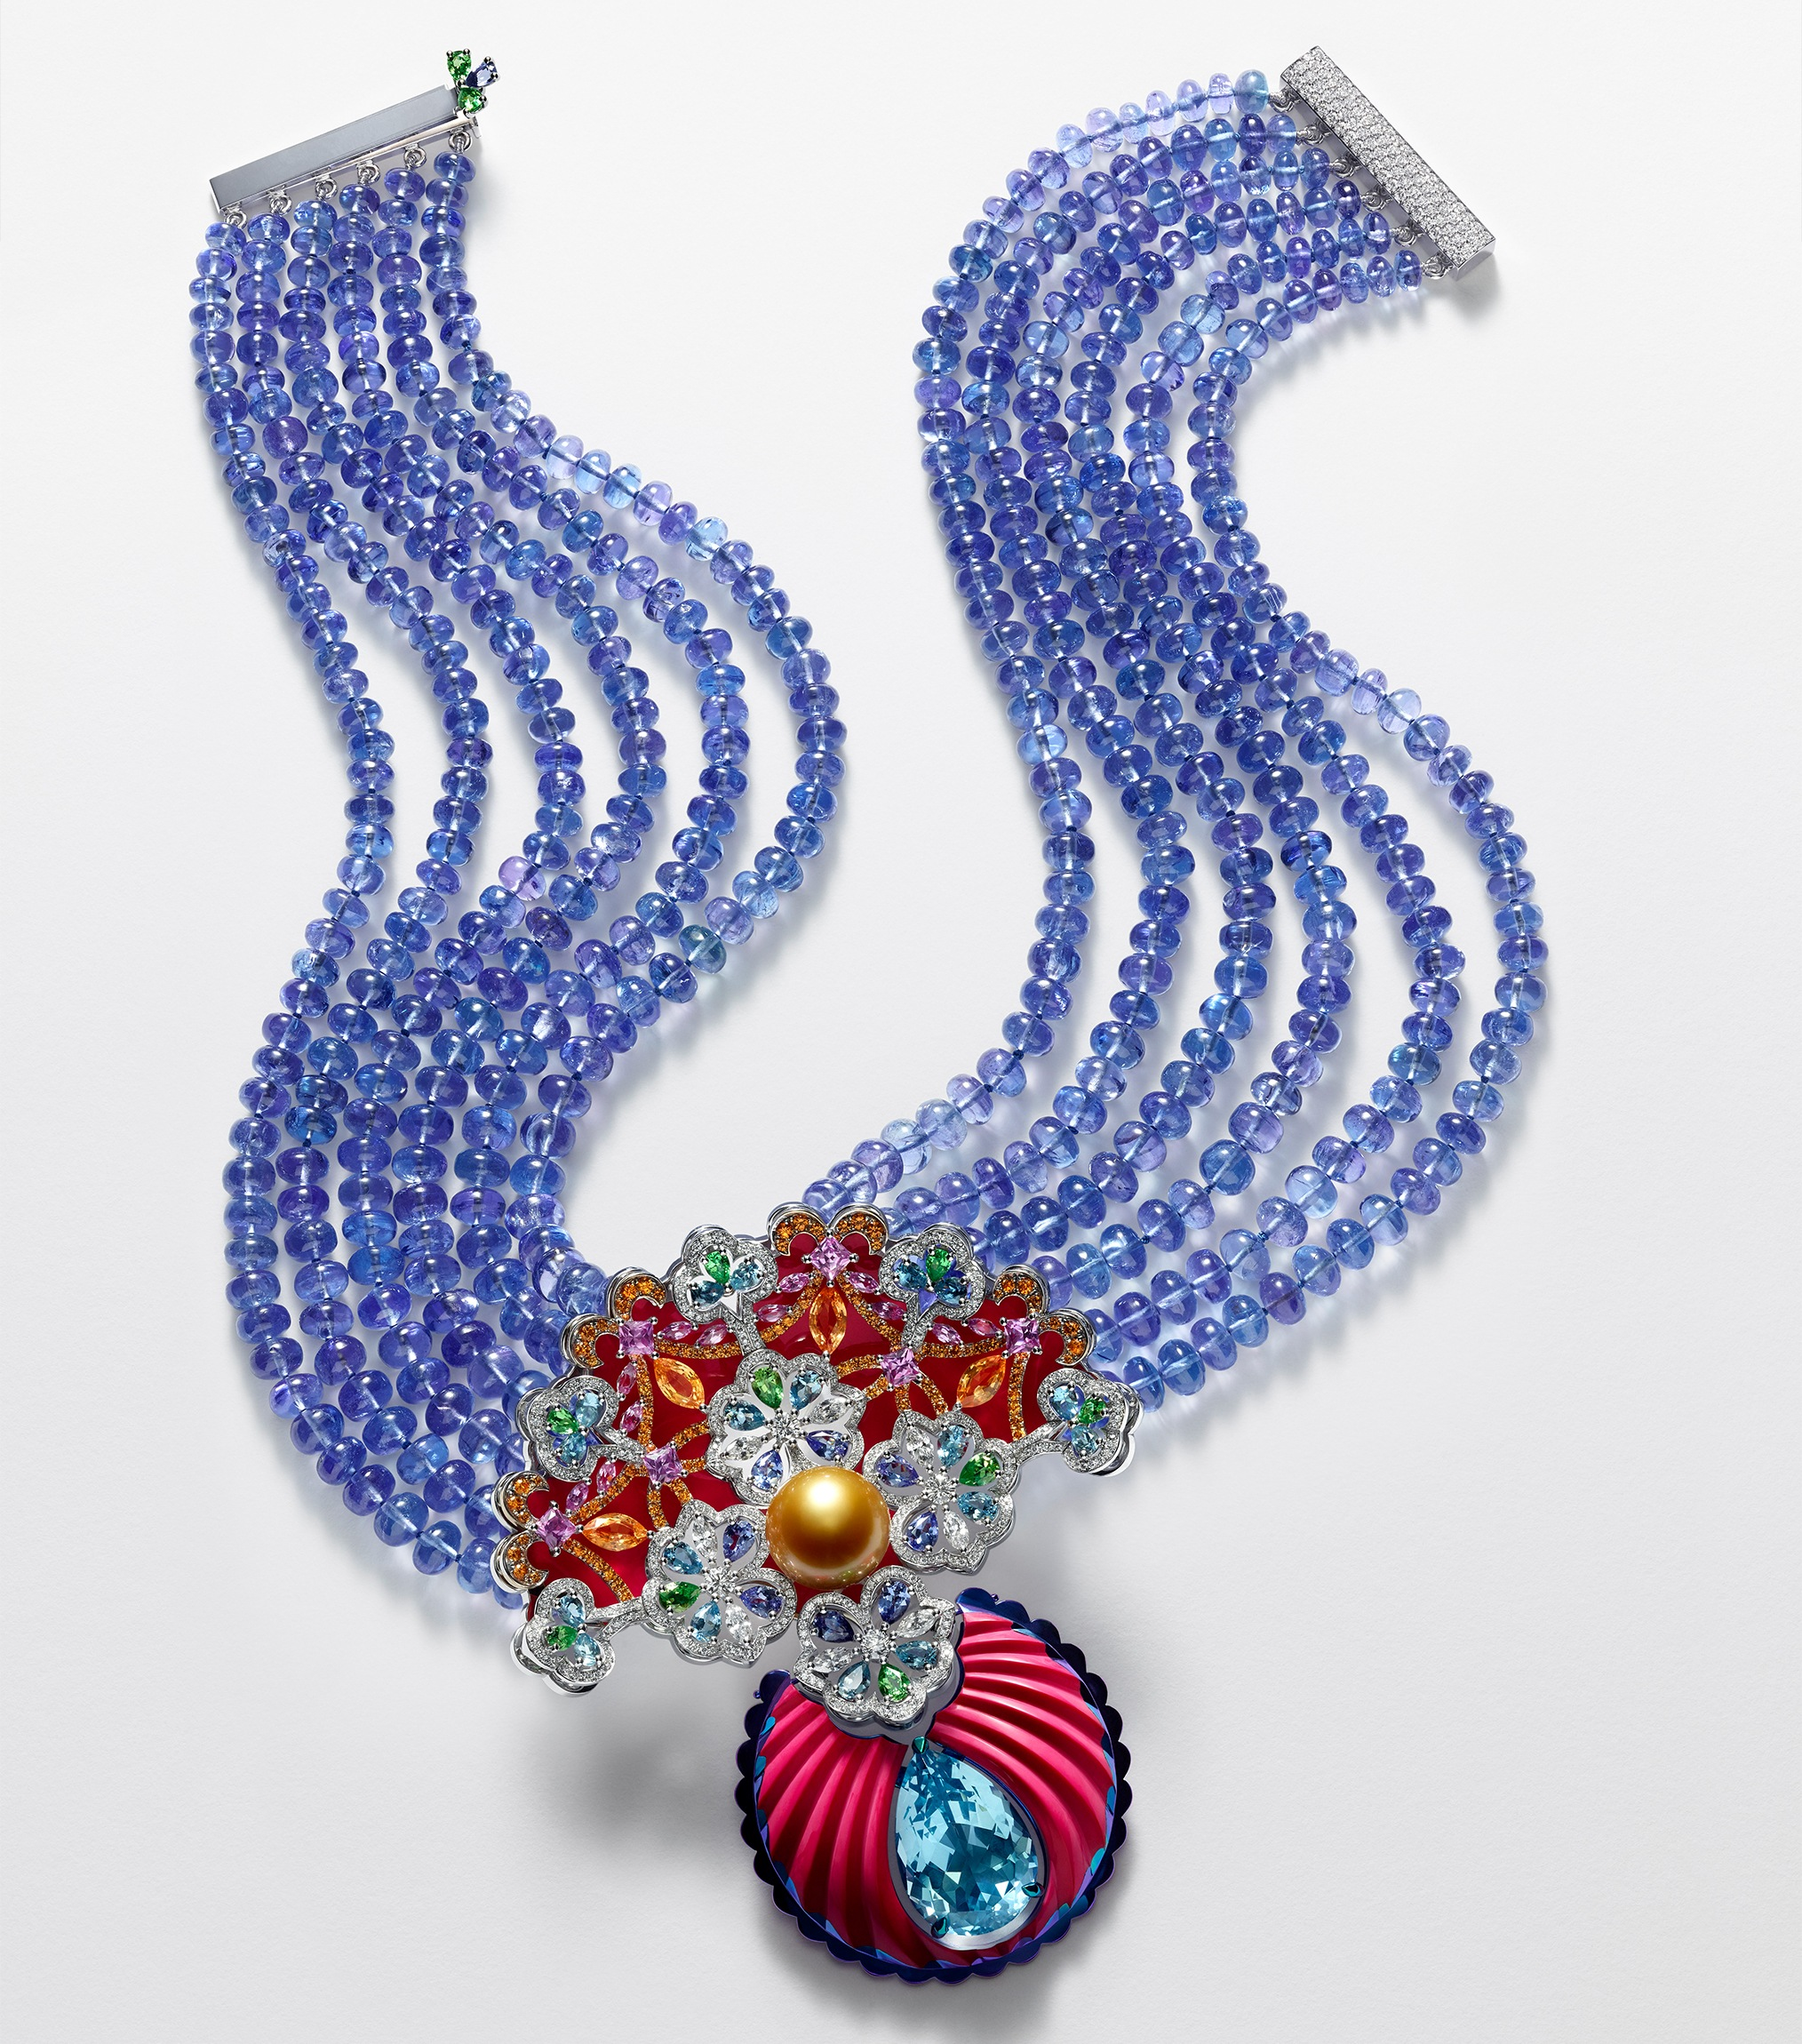 chopard riot of colour necklace from the red carpet 2018 collection